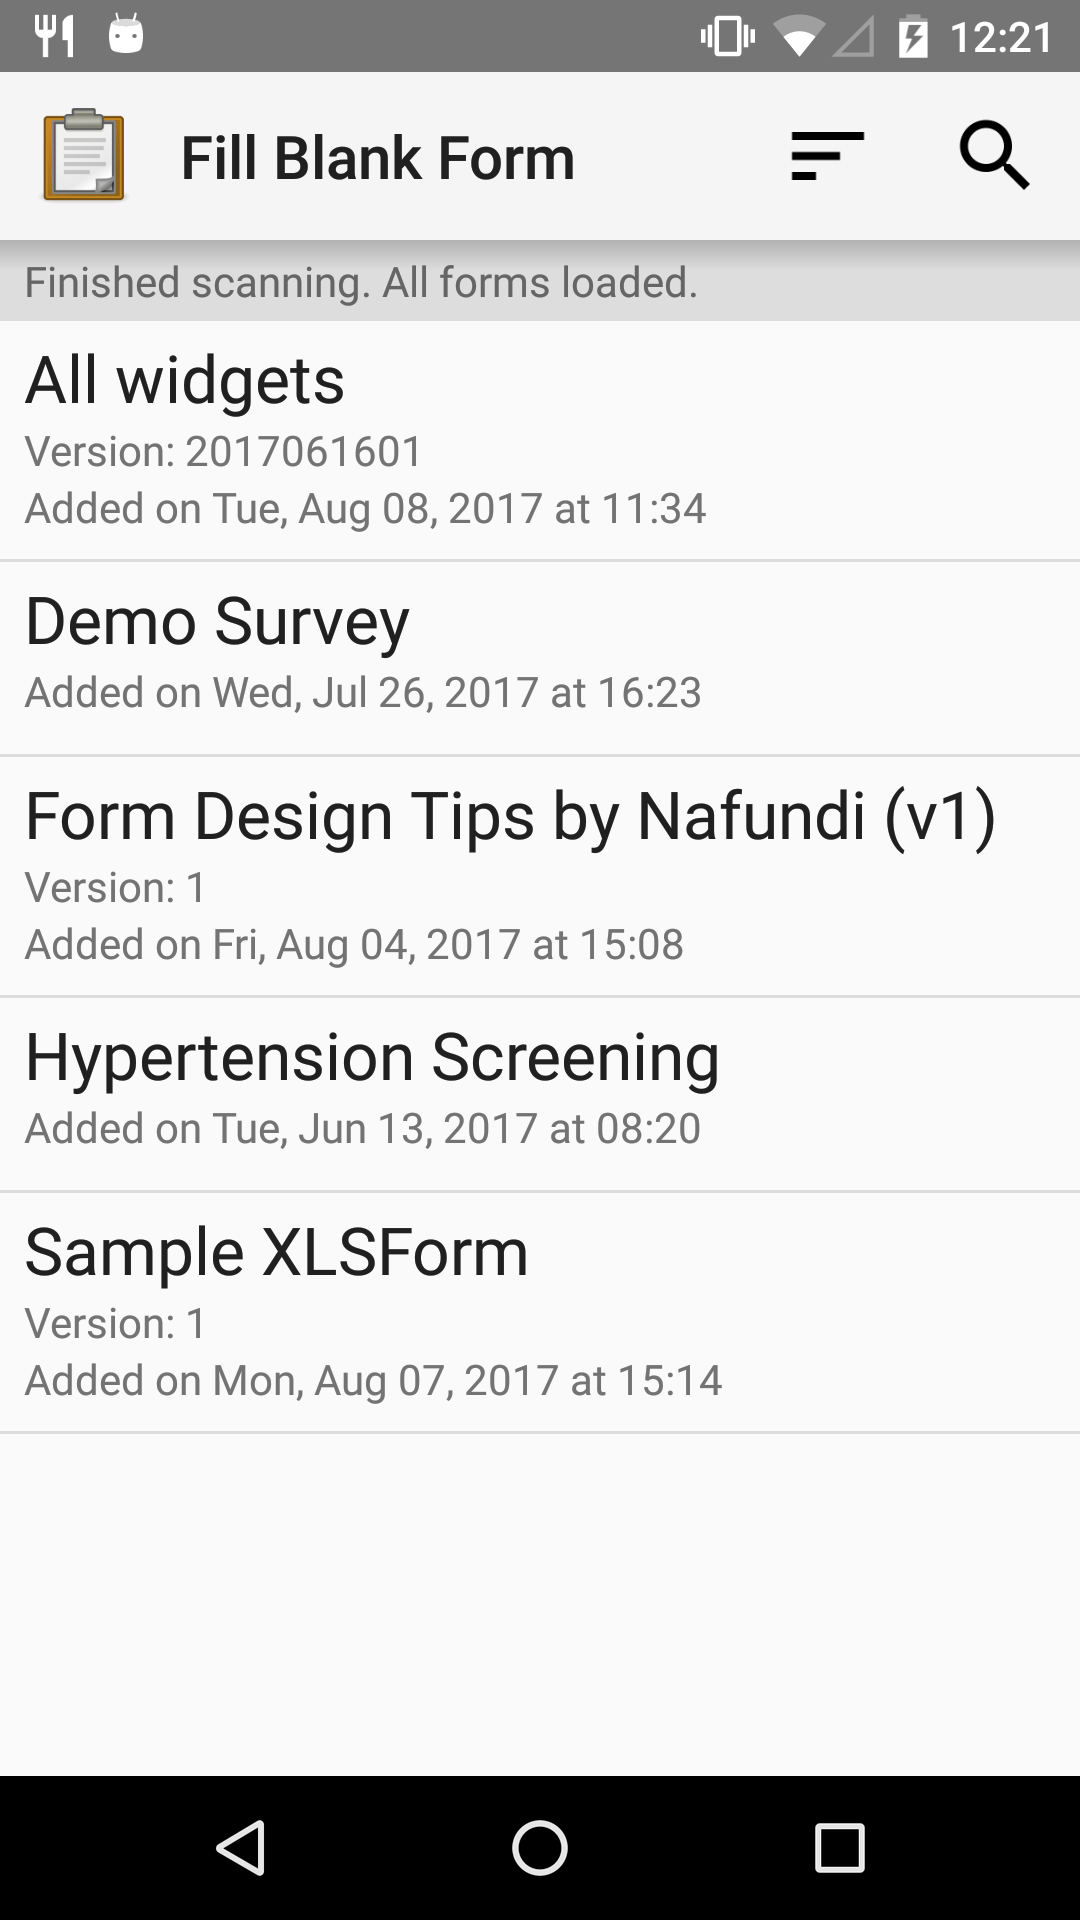 The Fill Blank Form menu in the Collect app. Several form titles are listed: *All widgets*, *Demo Survey*, *Form Design Tips by Nafundi*, *Hypertension Screening*, *Sample XLSForm*.